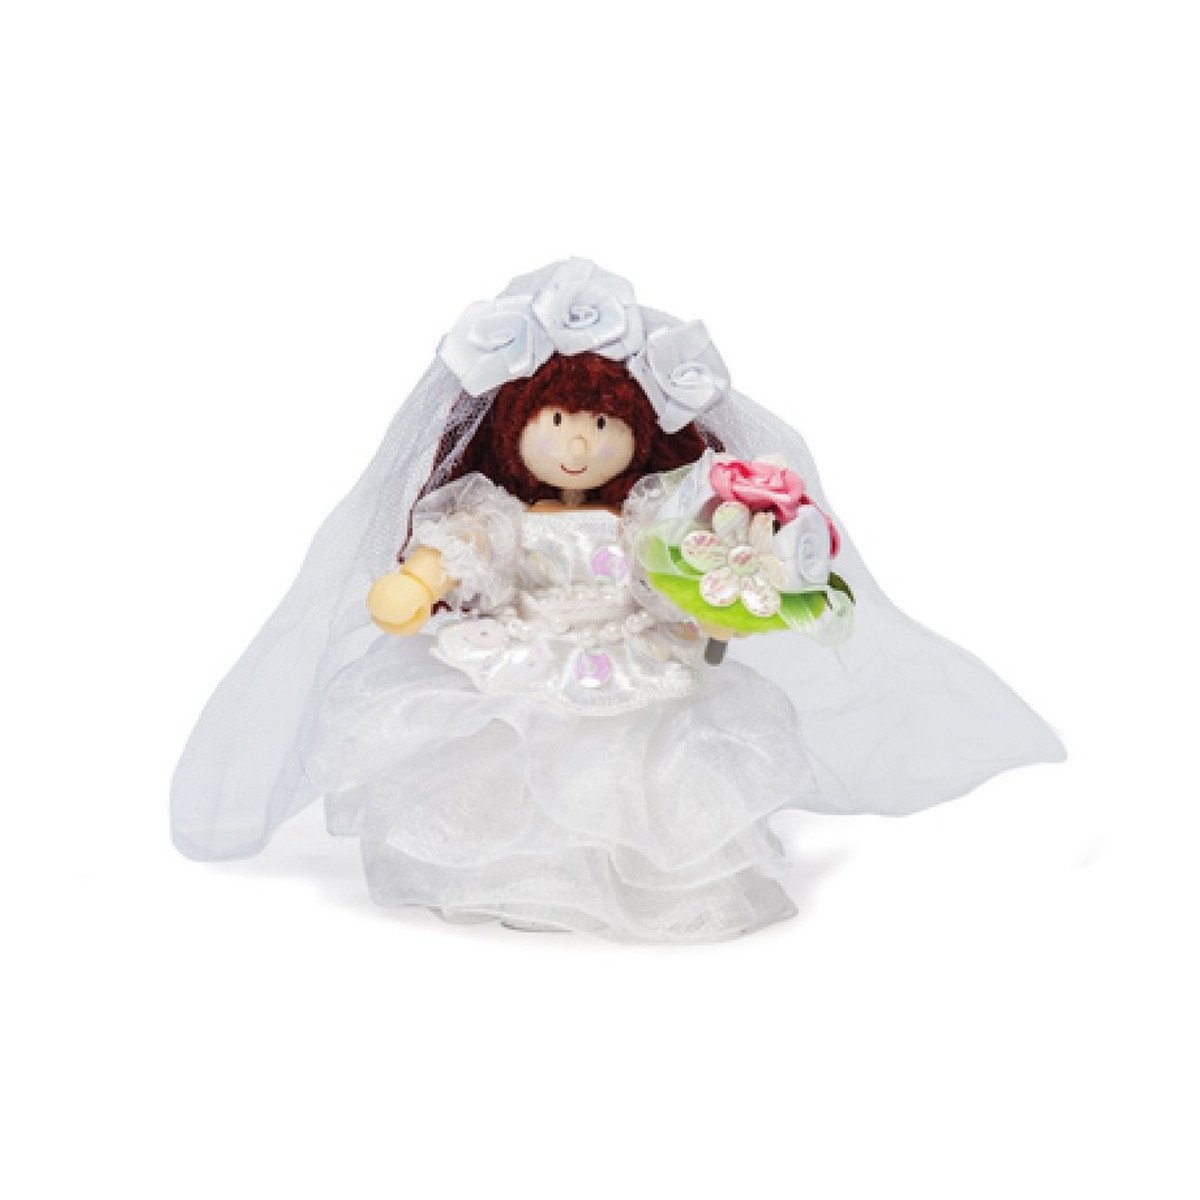 Le Toy Van Budkins Individual Doll House People  Bride - Le Toy Van - Little Earth Nest - 3